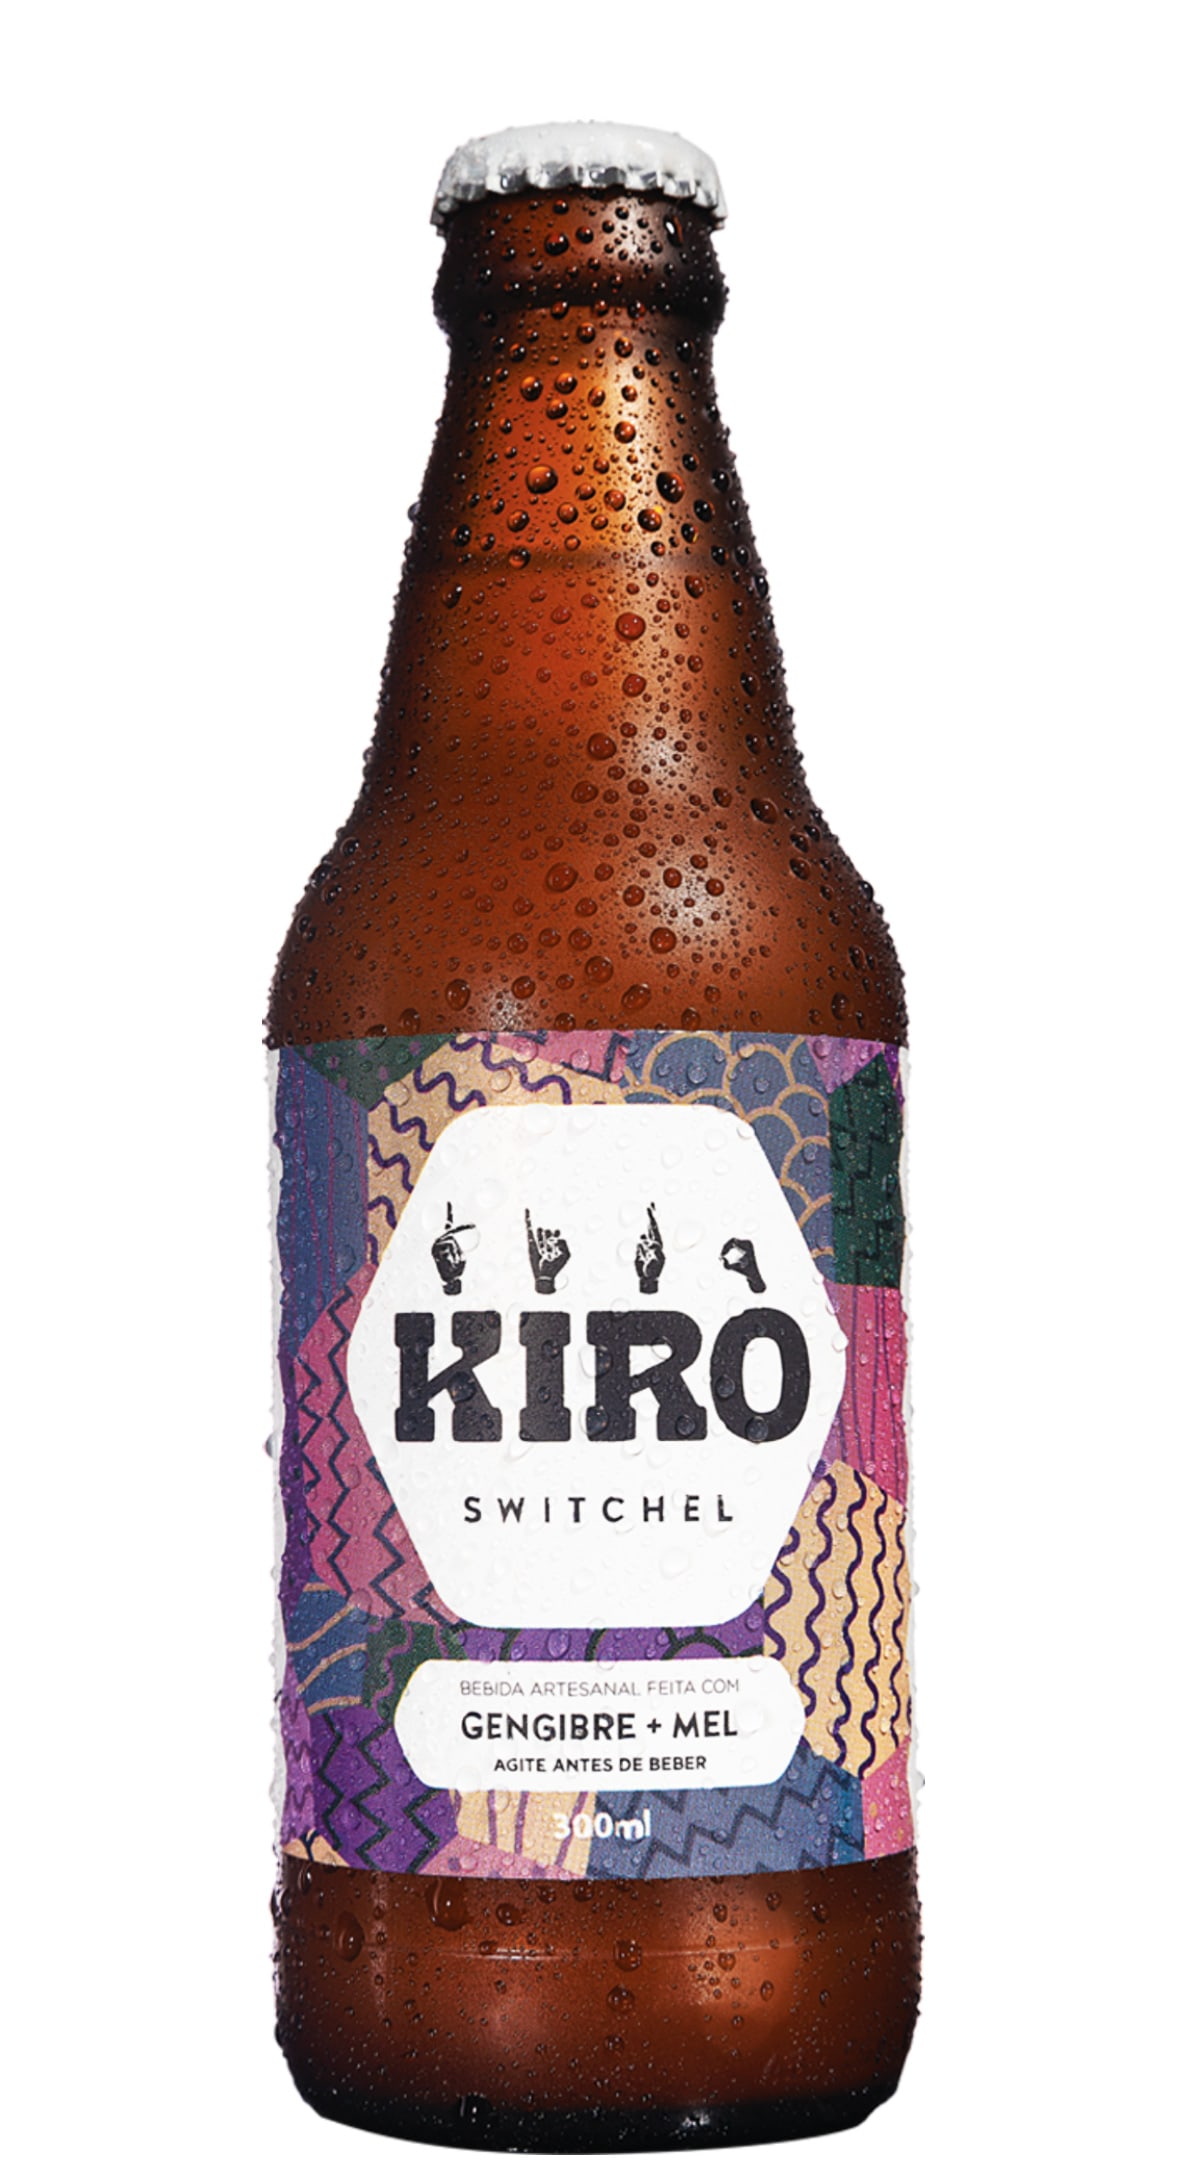 Kiro Switchel (sem álcool) - Gengibre e mel - (300ml)